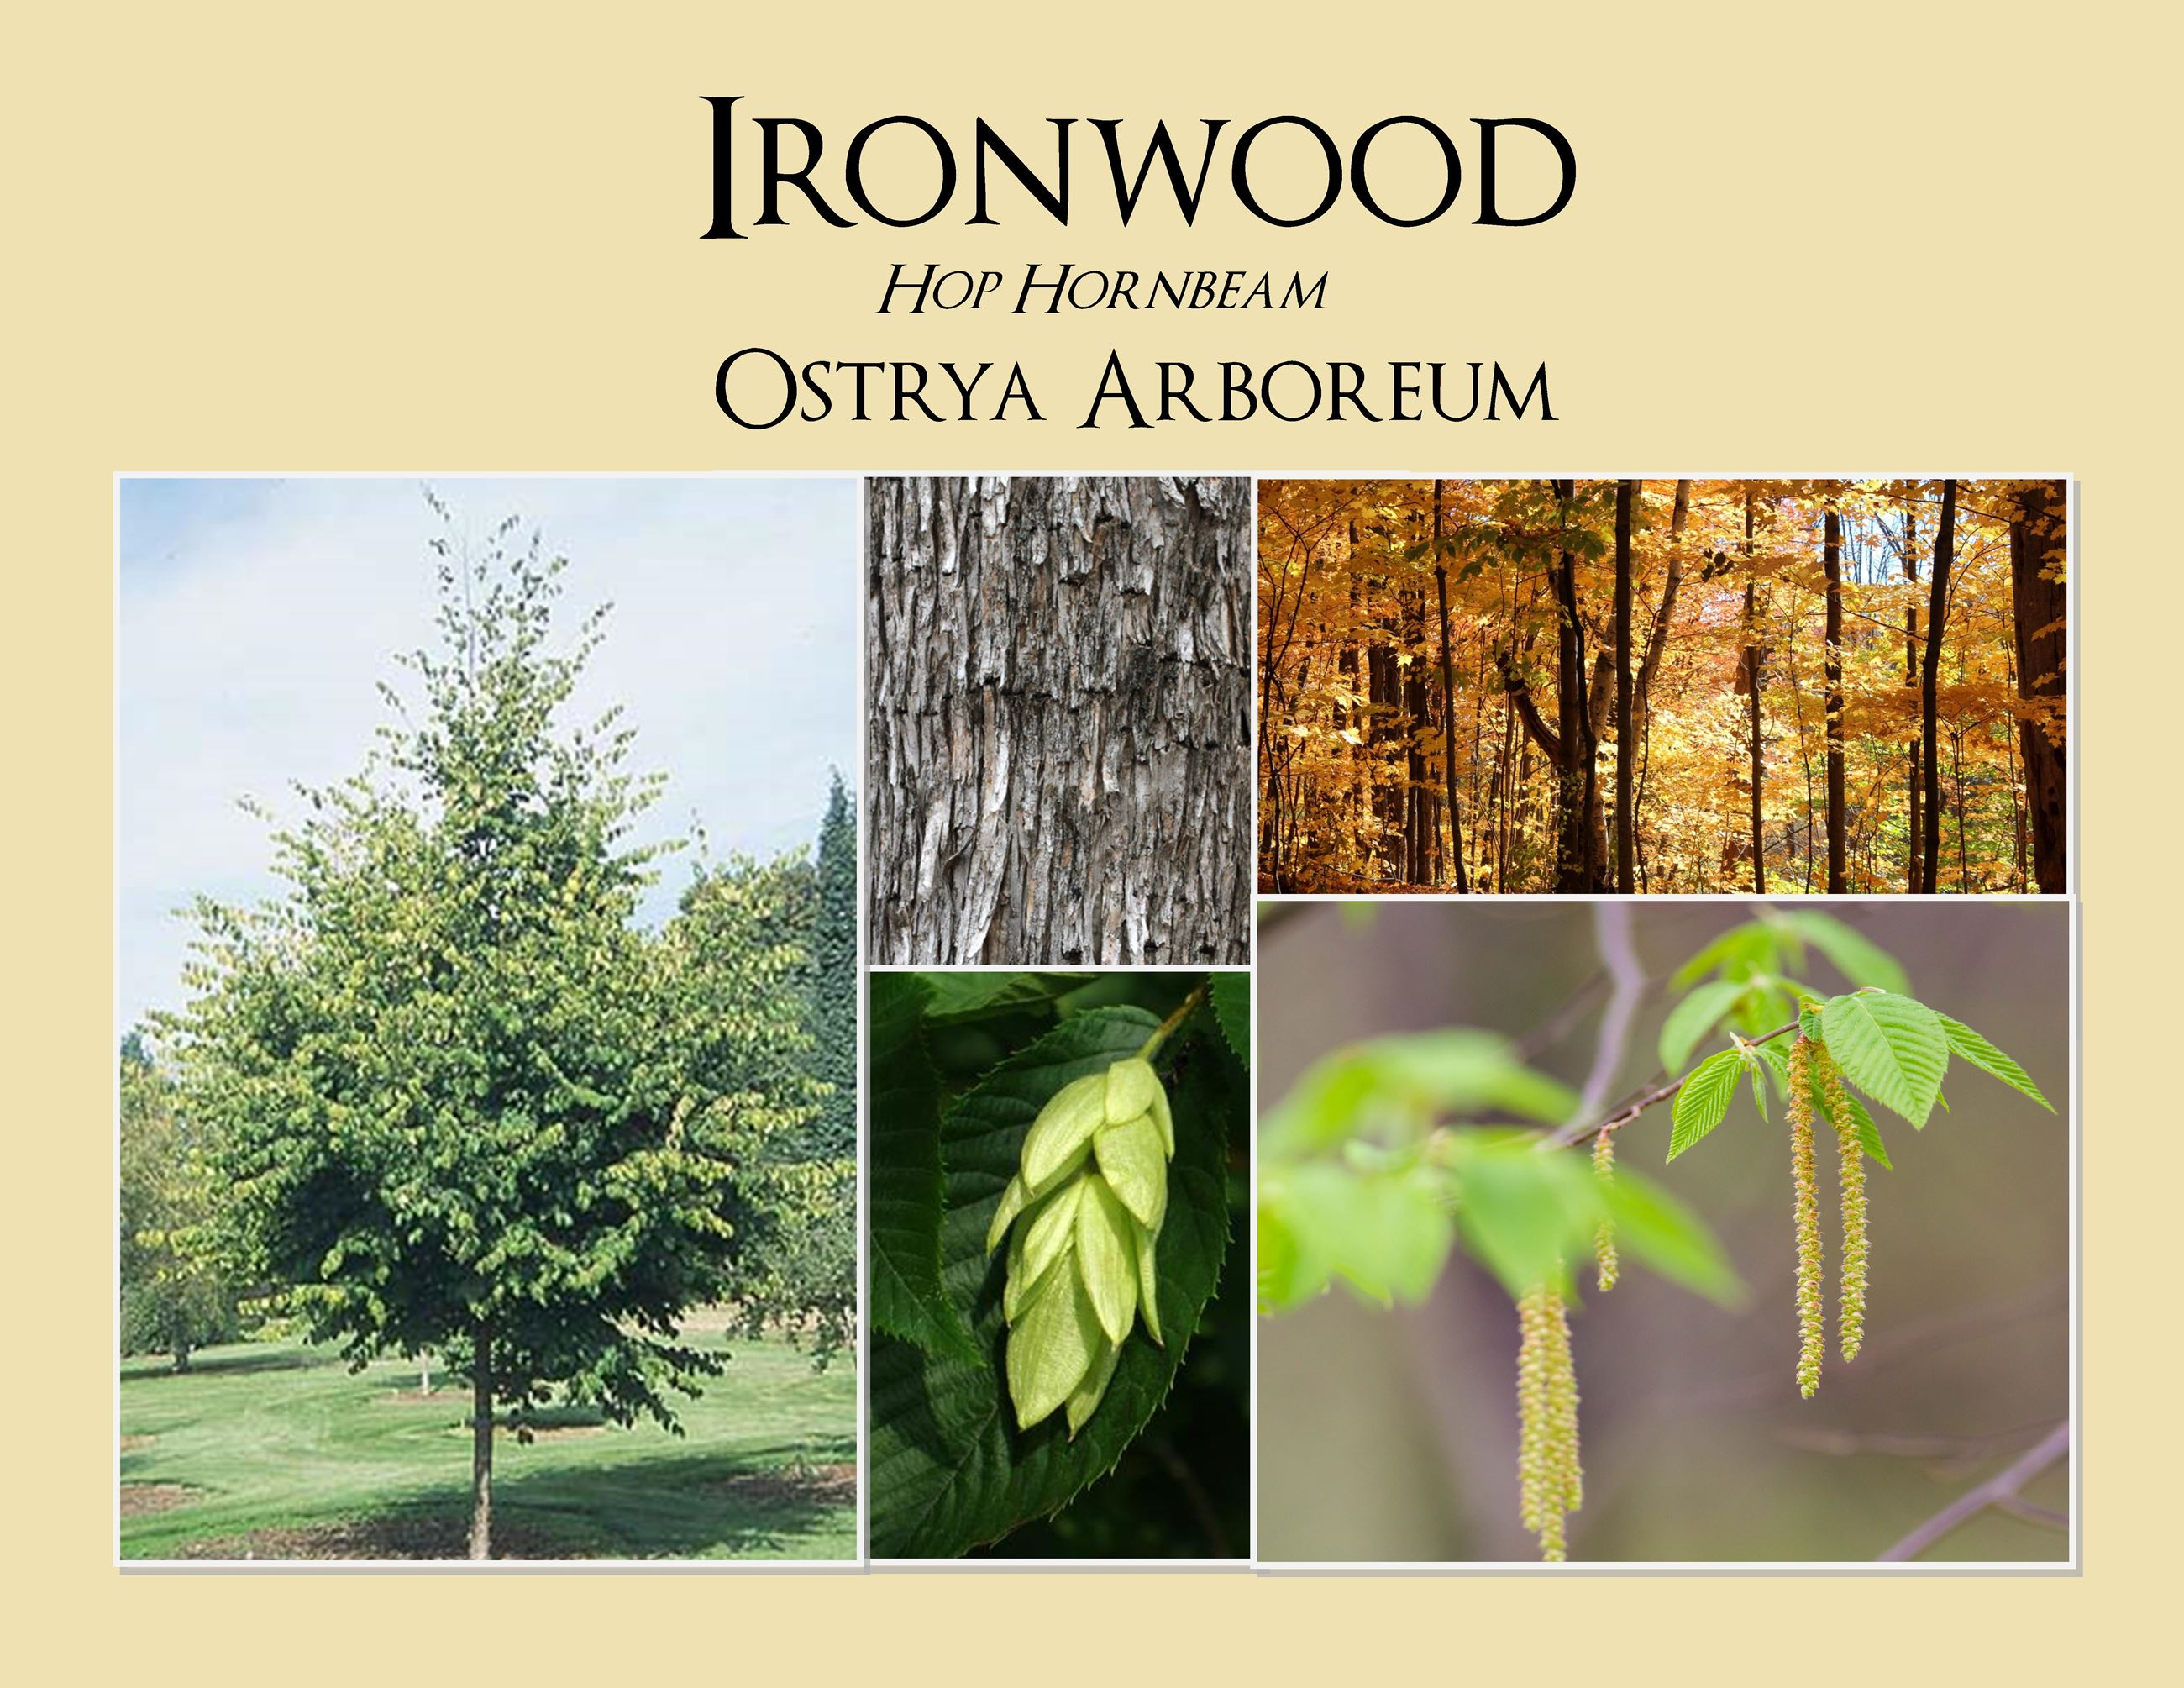 Ironwood Hop Hornbeam